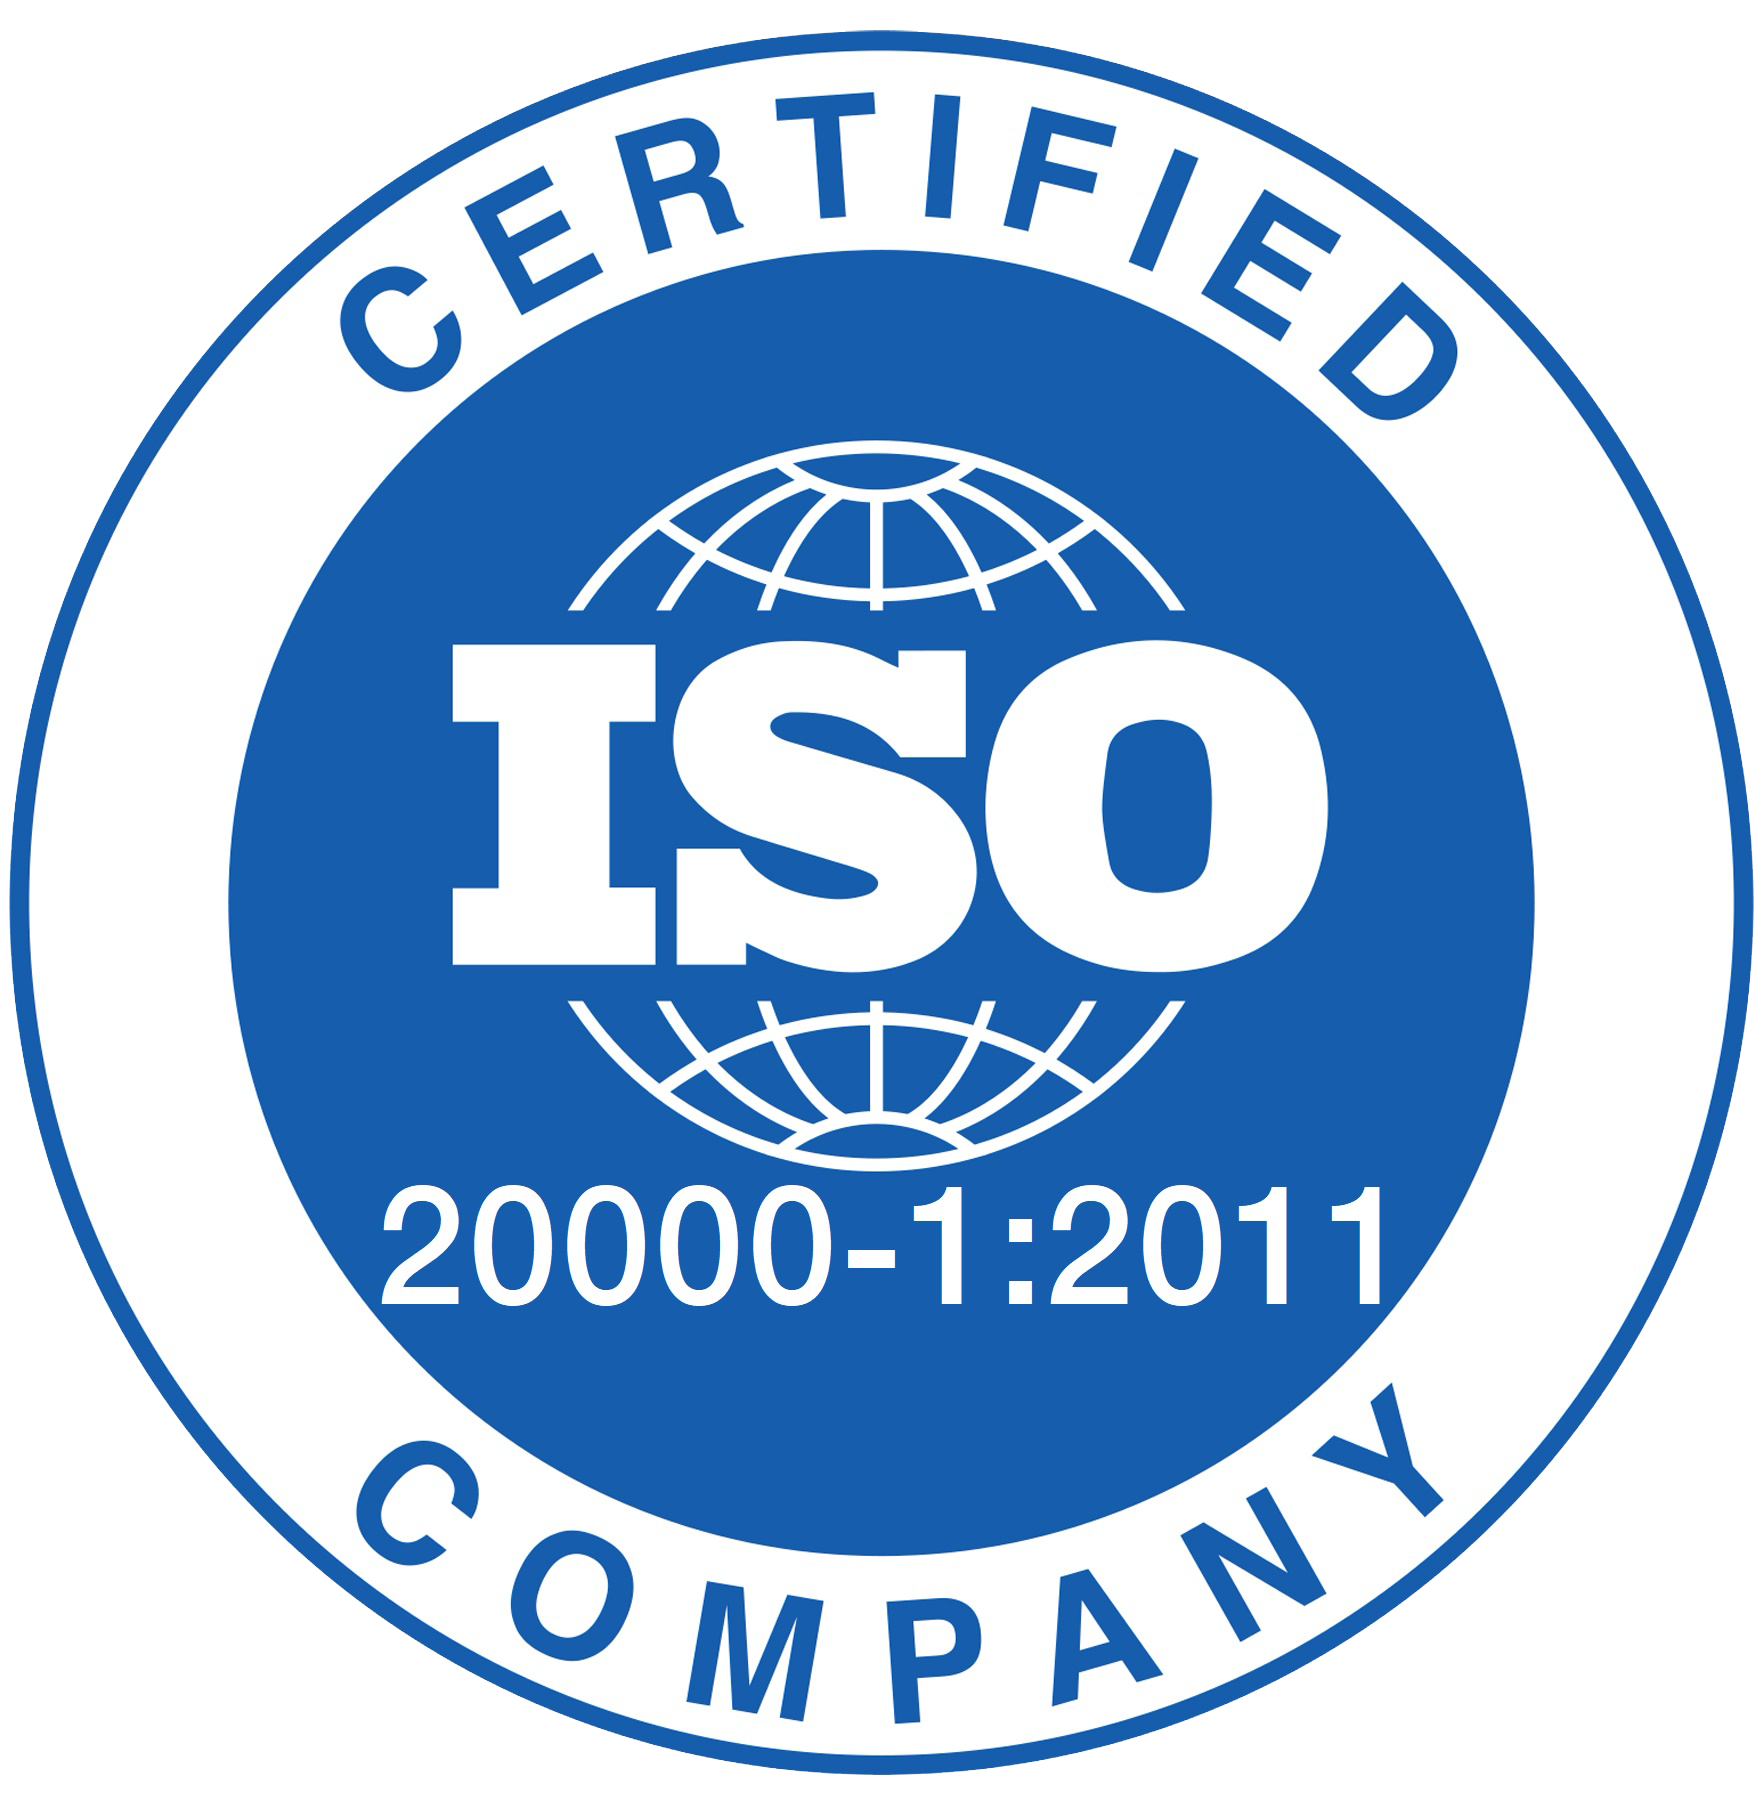 CVP is ISO 20000-1:2011 certified.